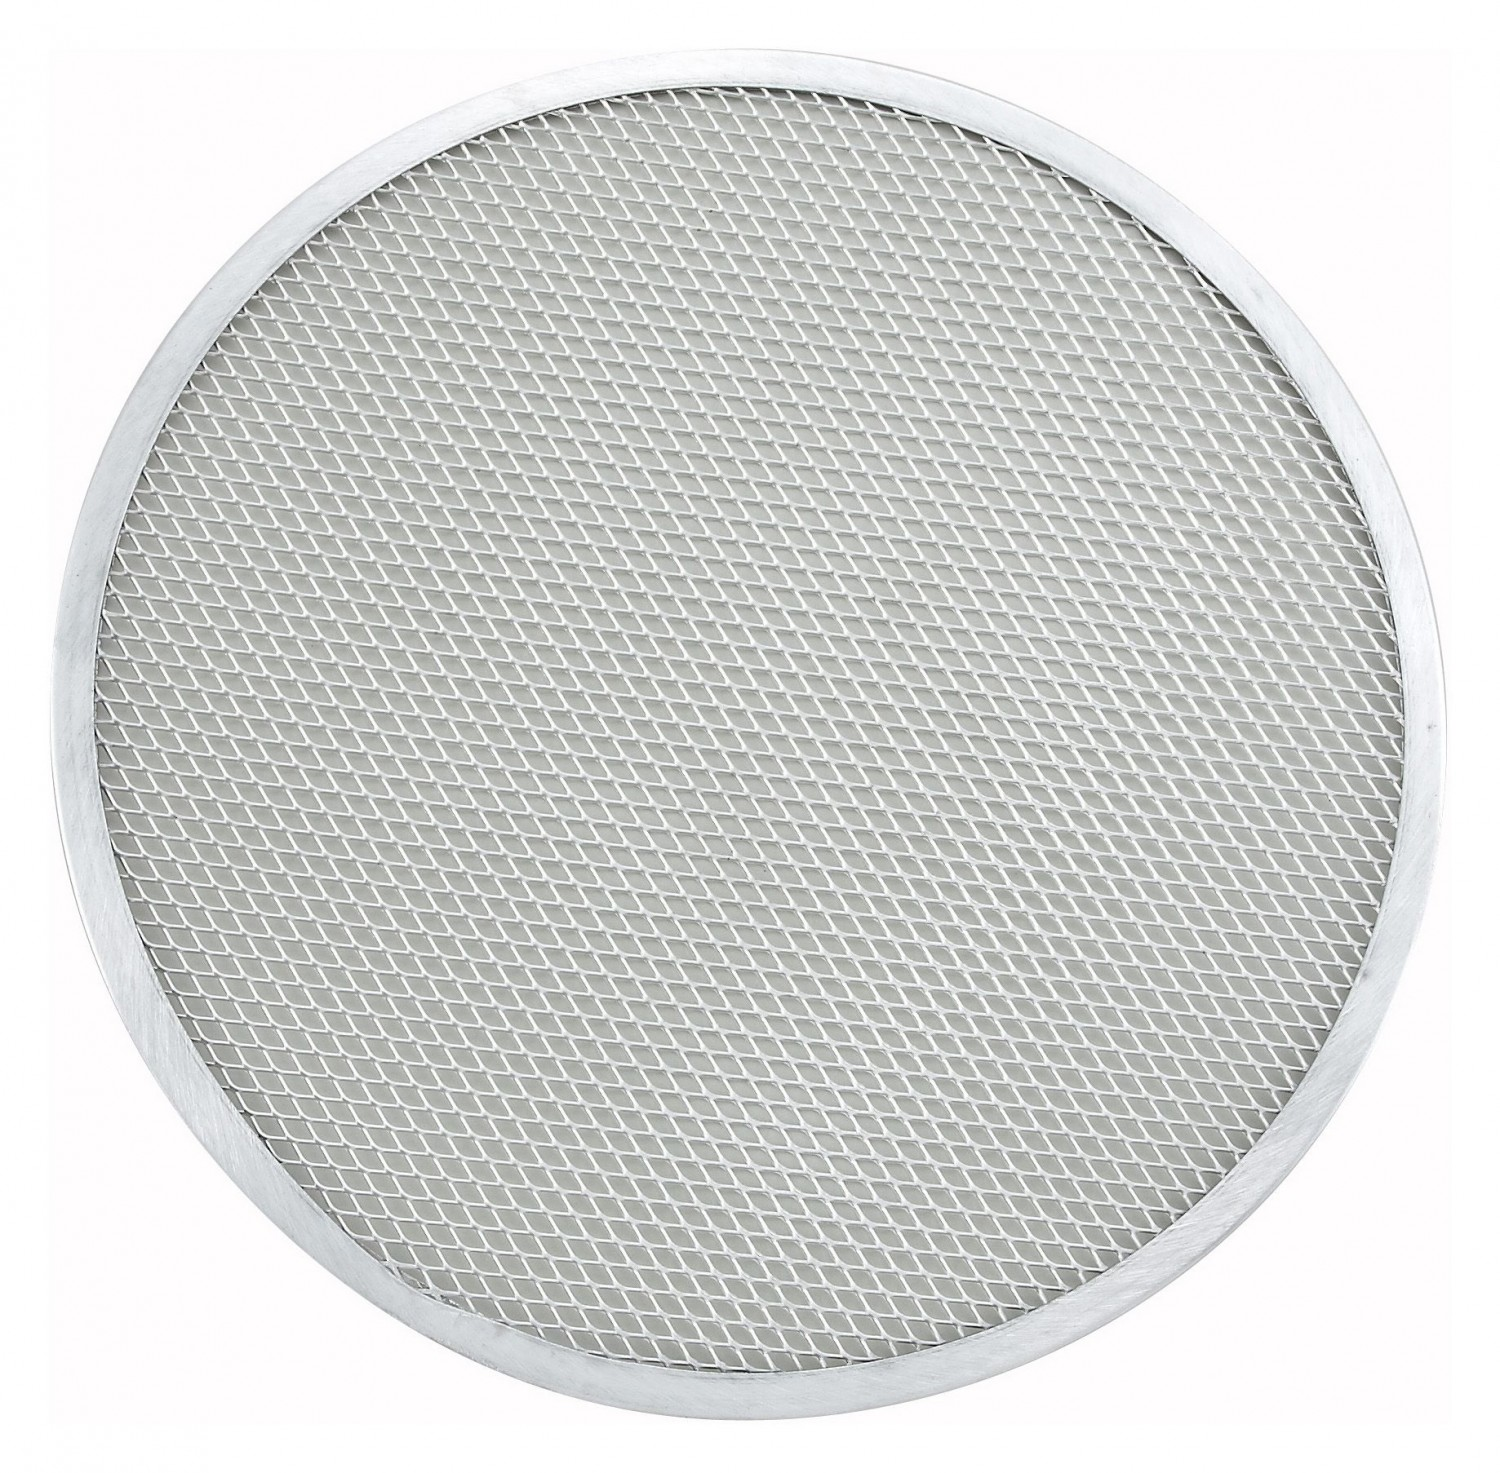 Winco APZS-15 Aluminum Mesh Seamless Pizza Screen, 15""